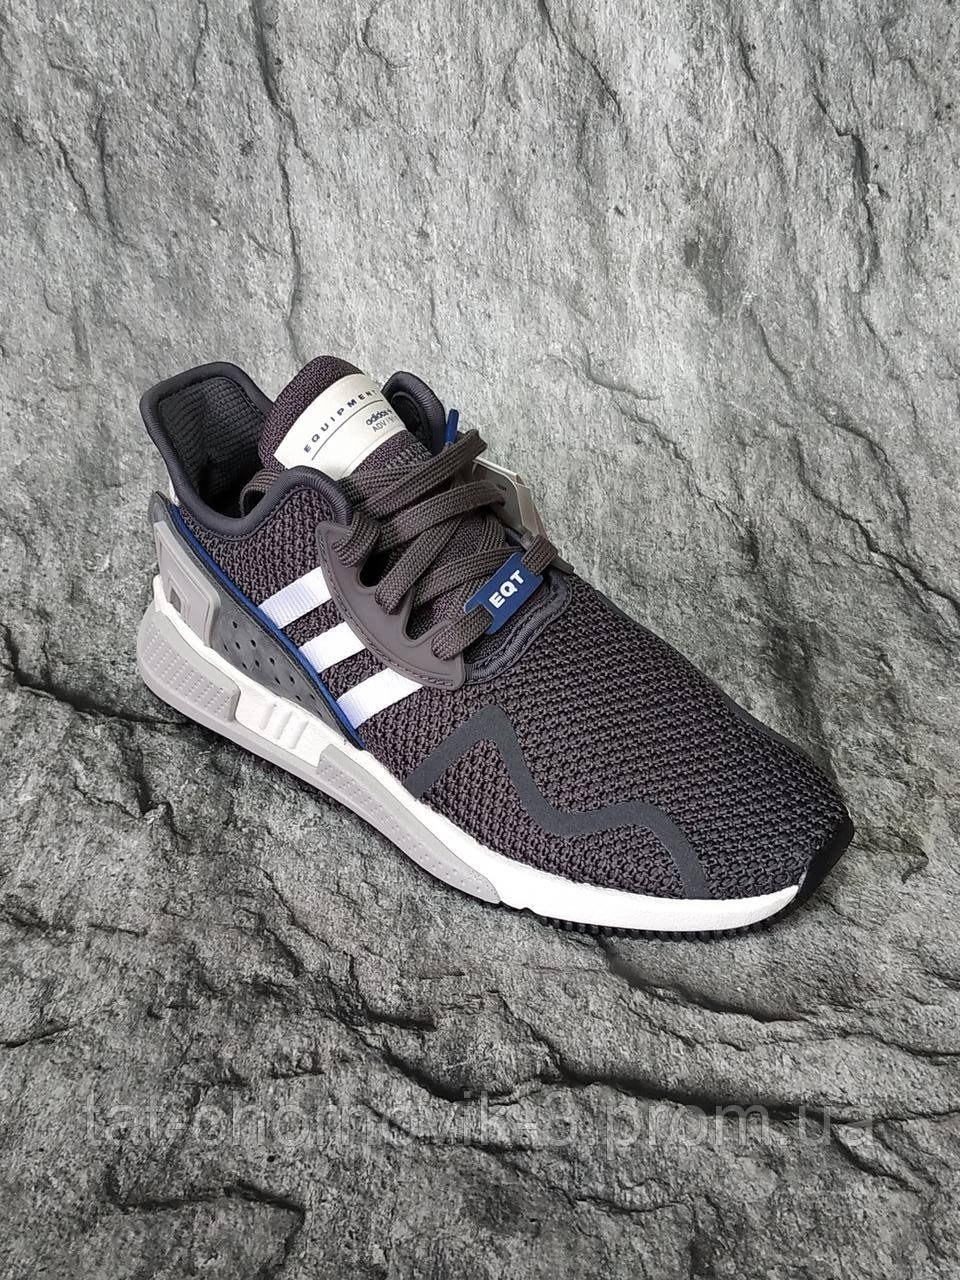 Adidas Mens EQT Support Adv Trainers